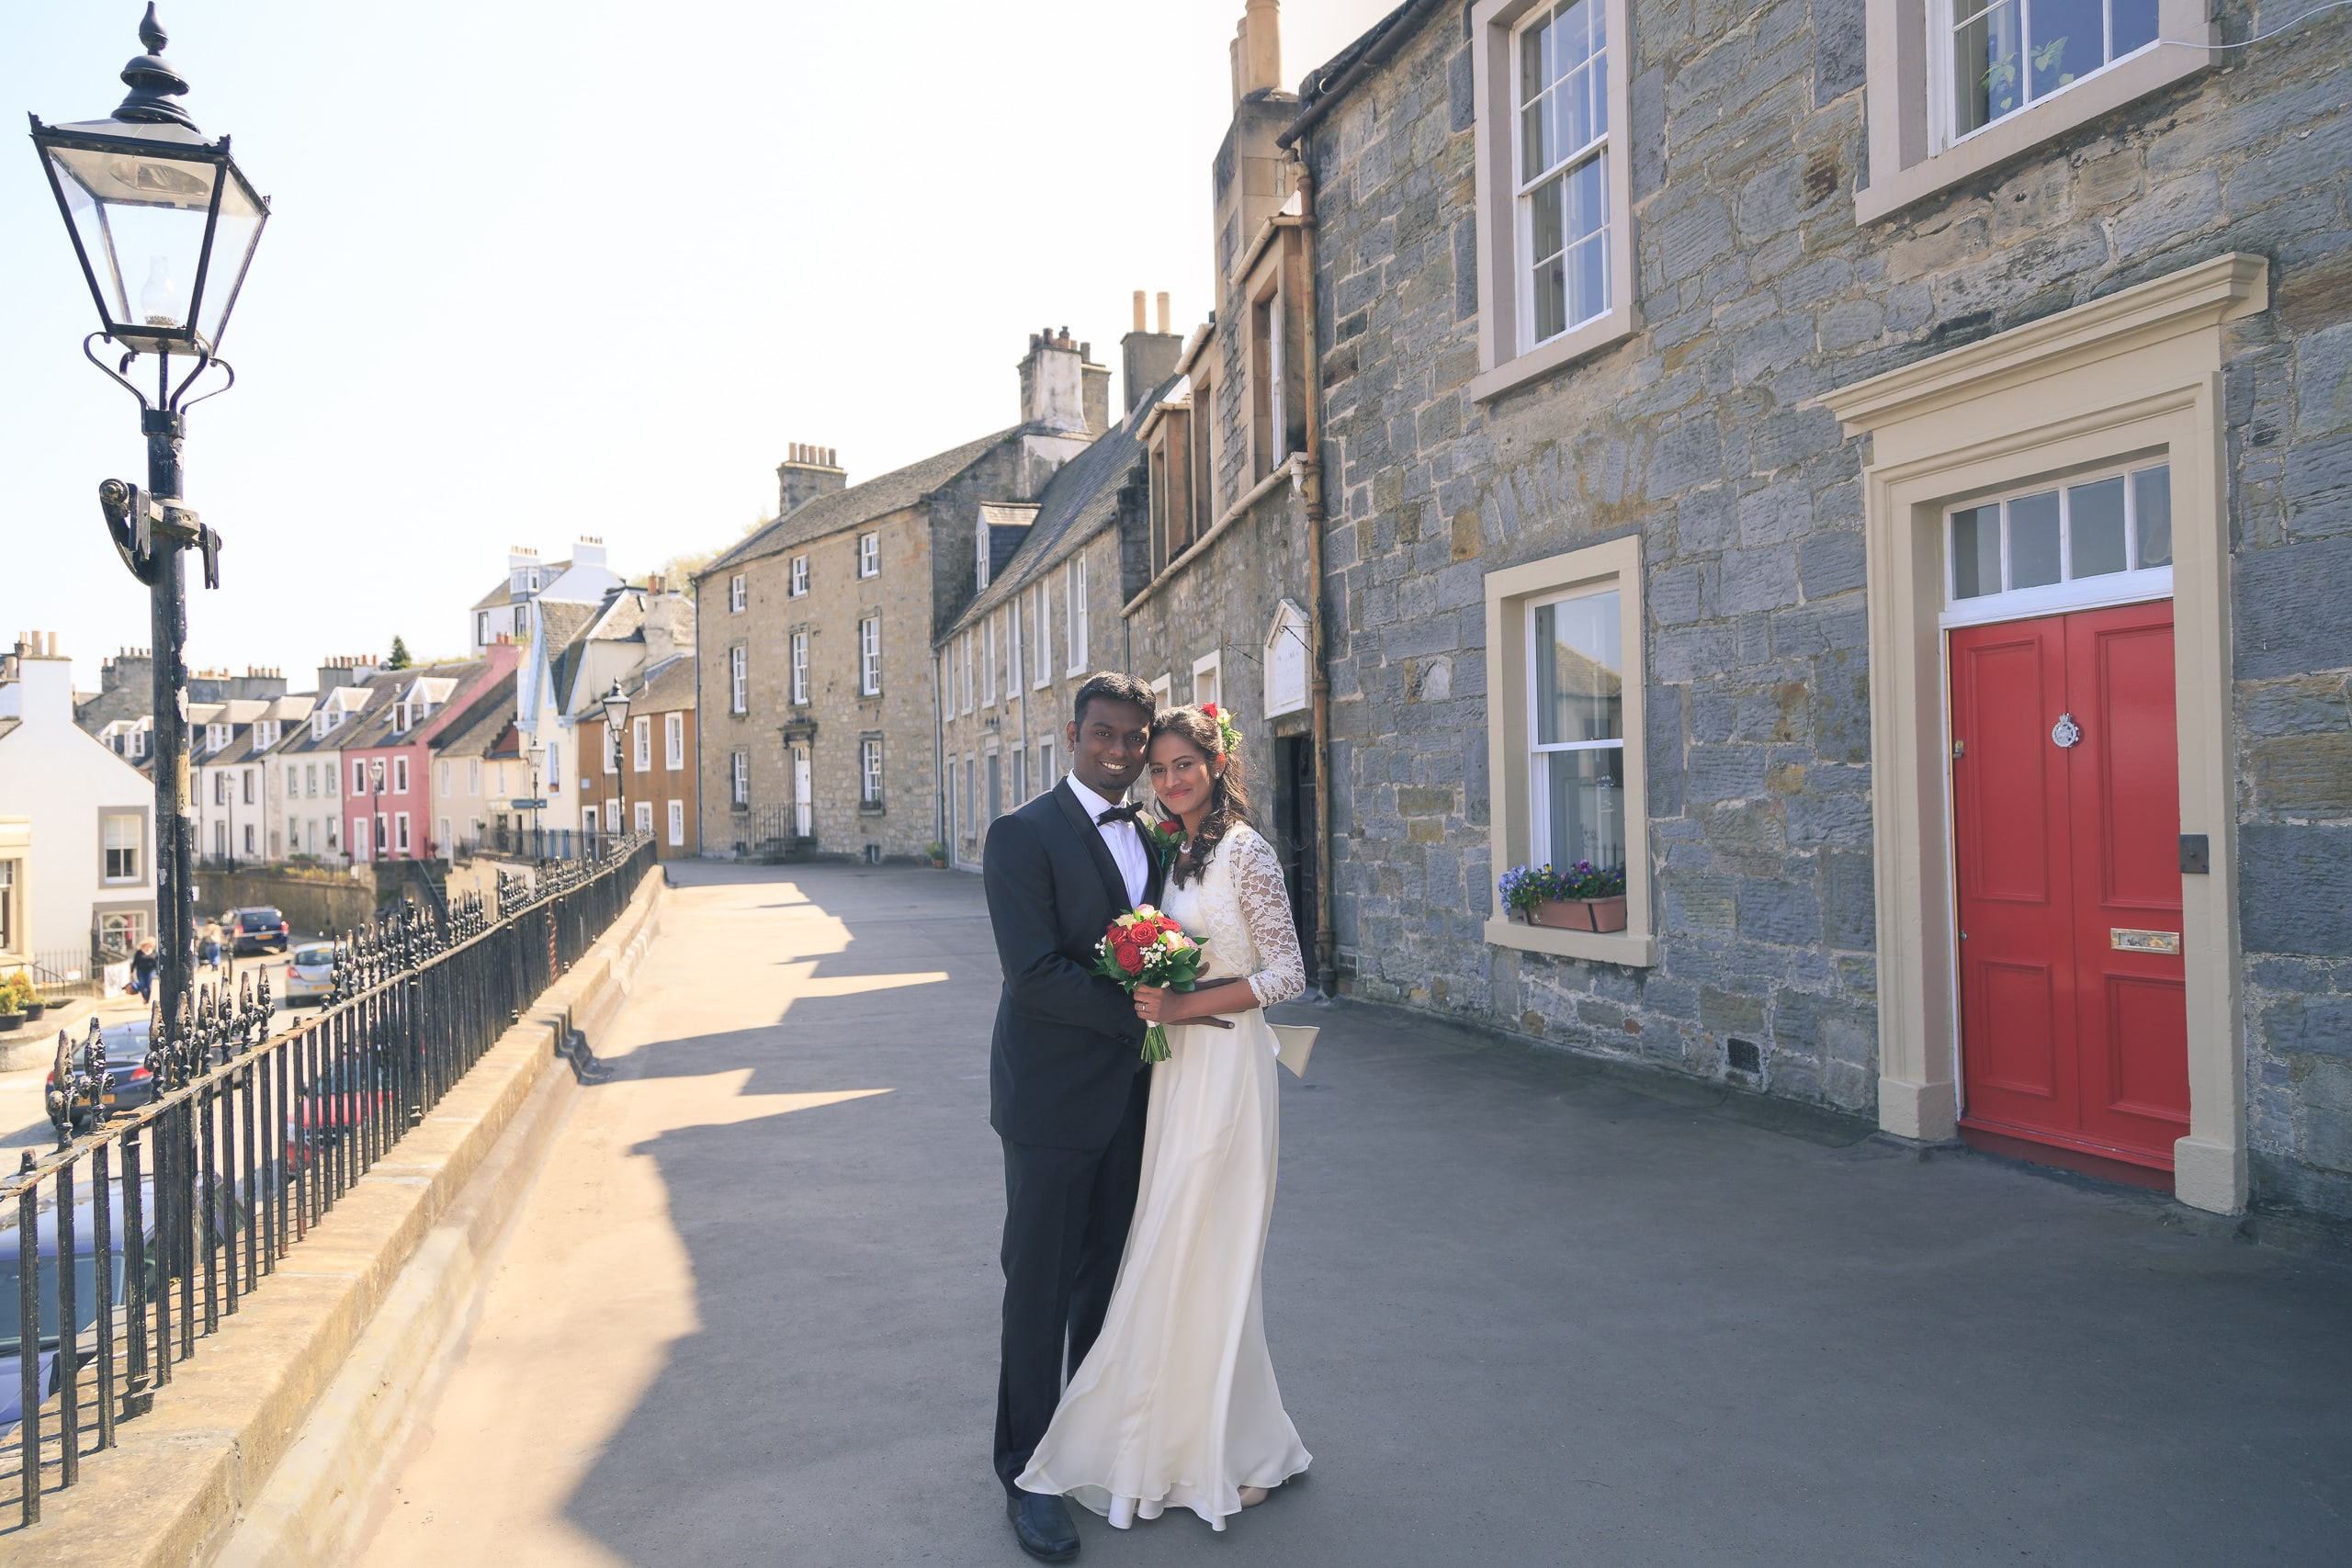 The bride and groom in the streets of South Queensferry